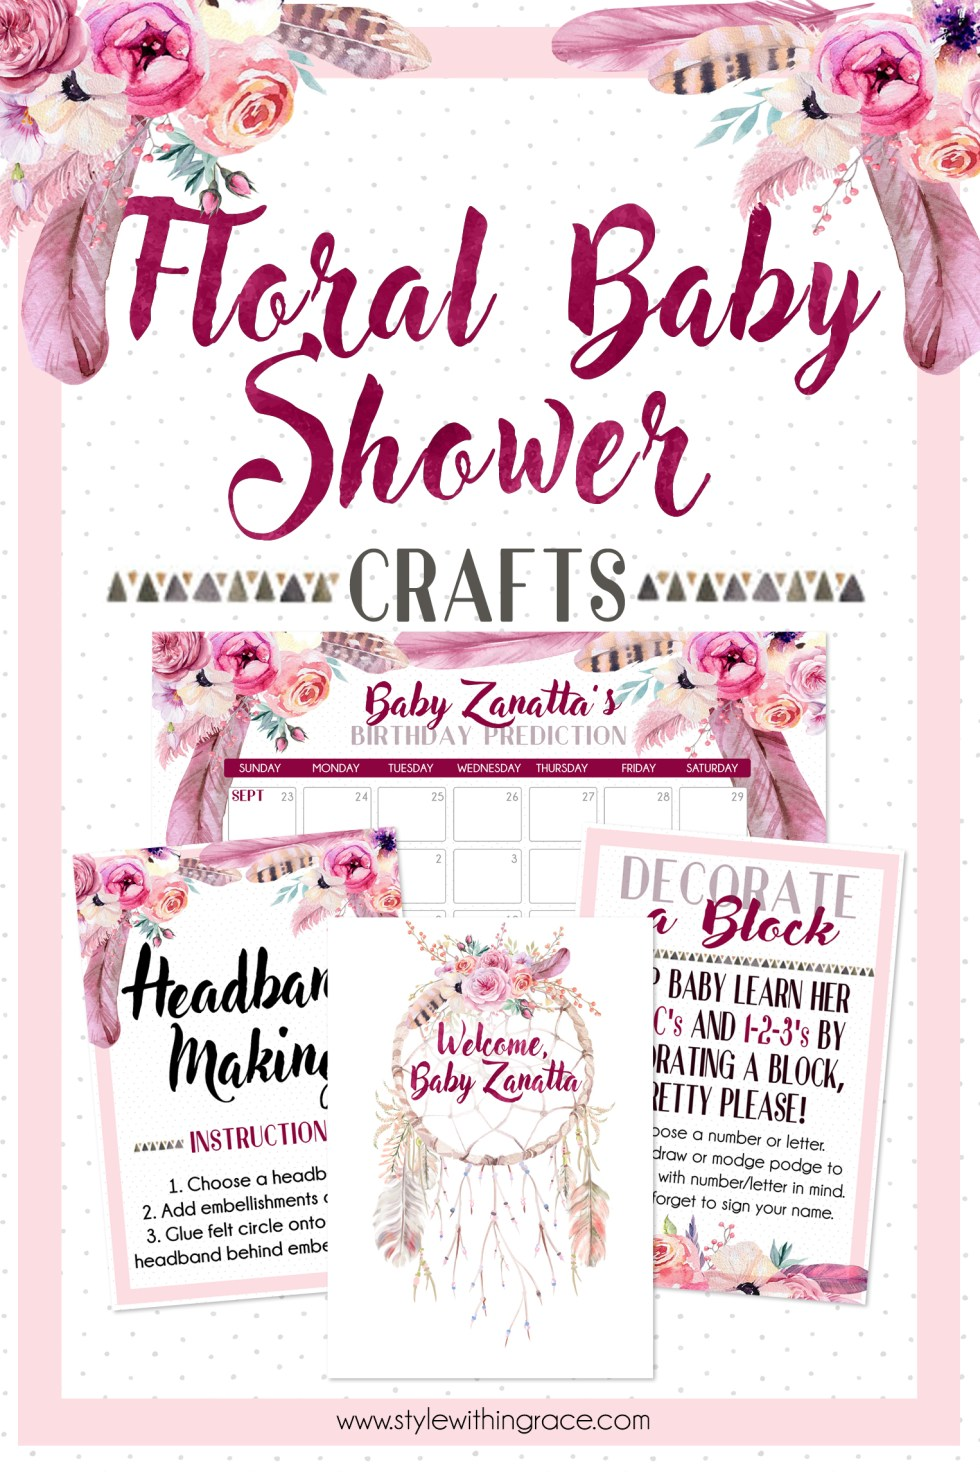 Floral baby shower craft ideas and inspiration to match your spring boho themed baby shower! Complete with free printables for a birthday prediction calendar, dream catcher fingerprint guest book, headband making station and decorate a block instruction sheets to help you DIY your perfect party with ease!